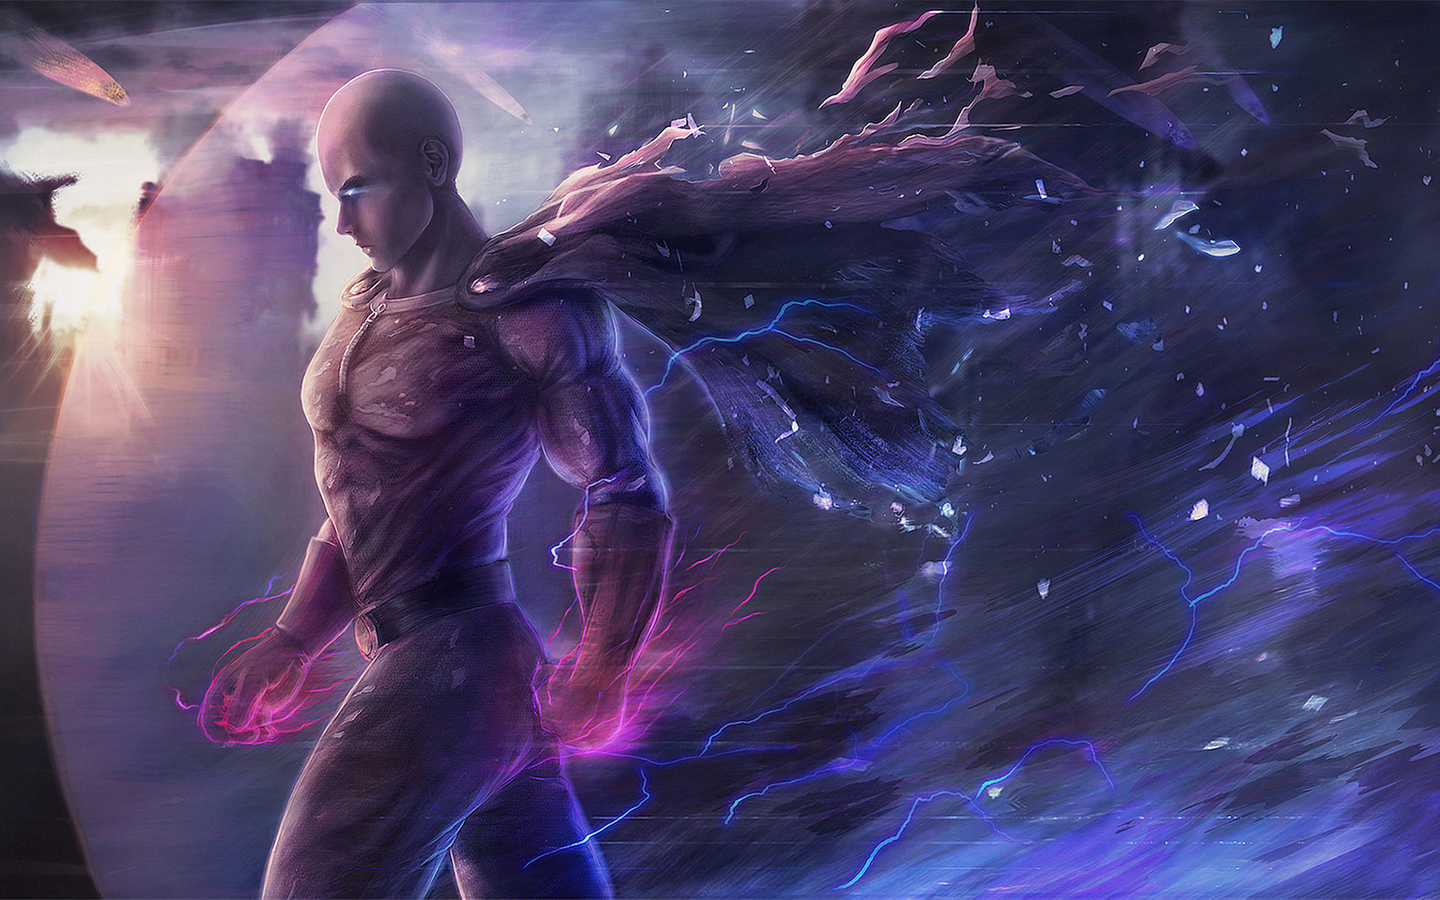 1440x900 Saitama One Punch Man 1440x900 Resolution Hd 4k